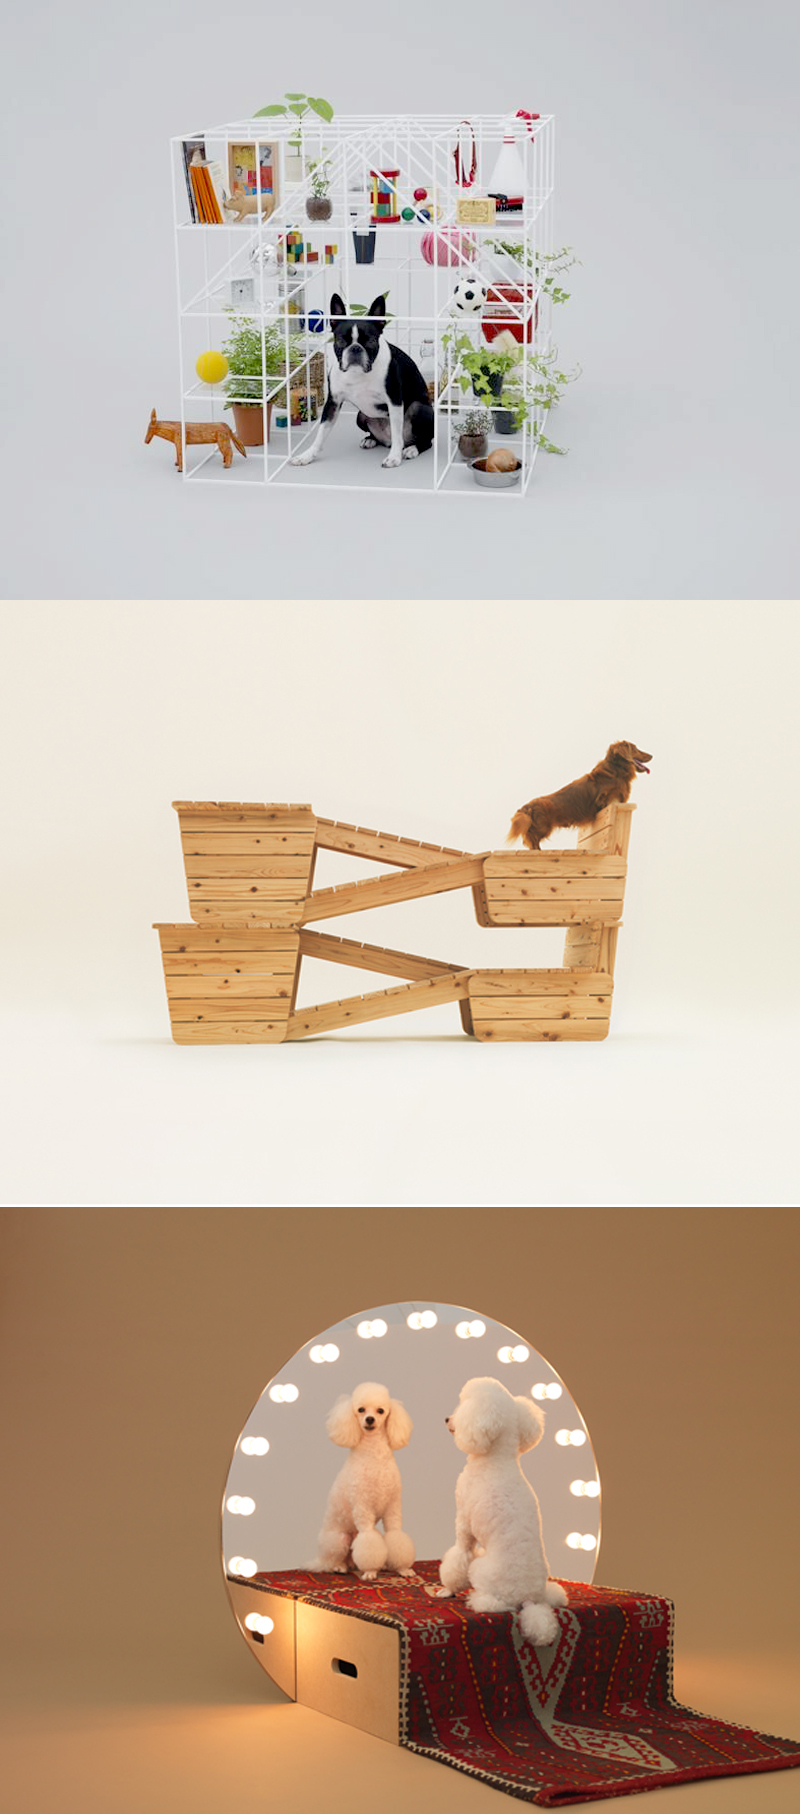 6} Sou Fujimoto/ Boston Terrier 7} Atelier Bow-Wow/ Long bodied short legged dog 8} Konstantin Grcic/ Toy Poodle